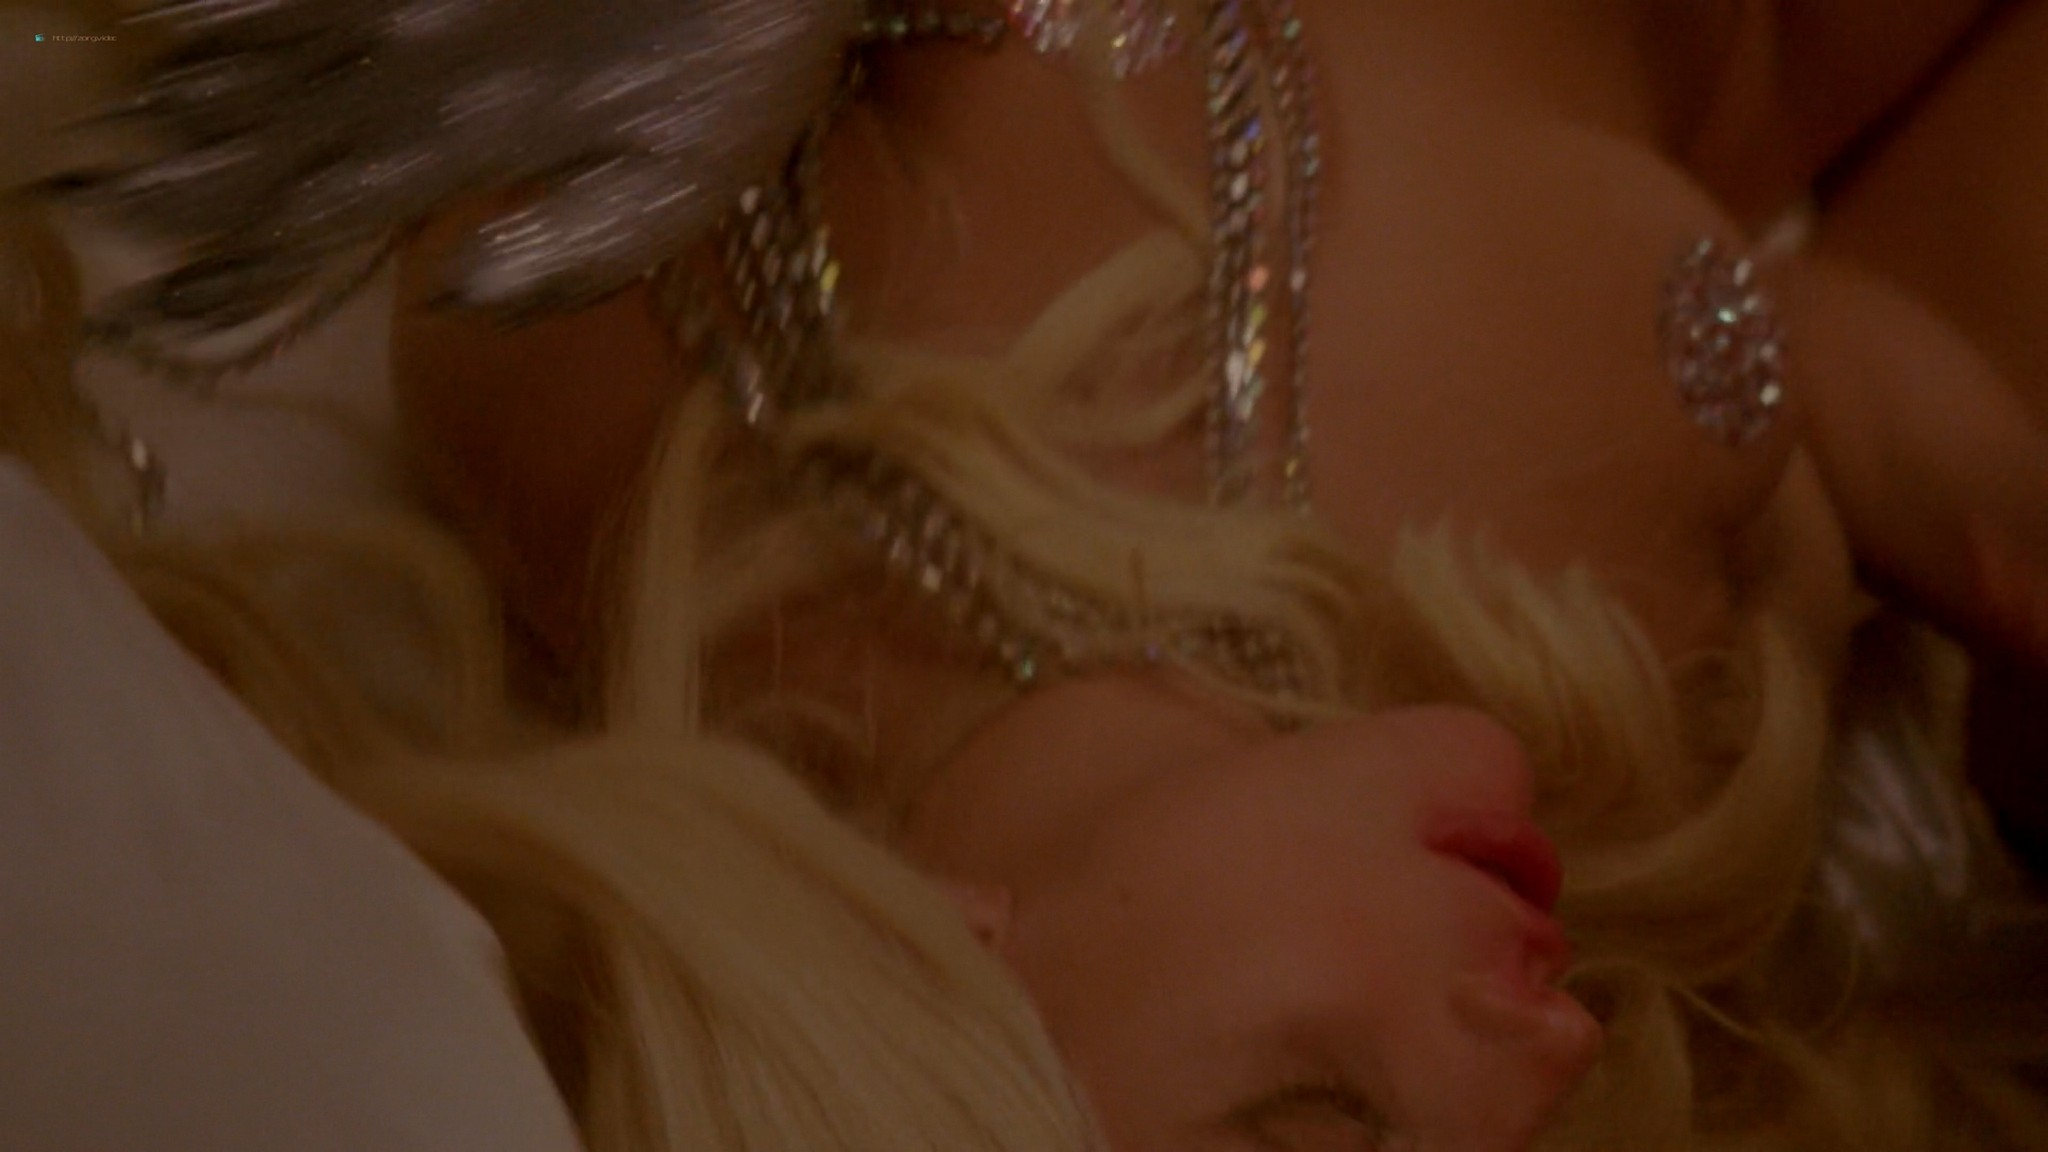 Lady Gaga butt in thong Chasty Ballesteros hot – American Horror Story s05e01 (2015) HD 1080p (3)